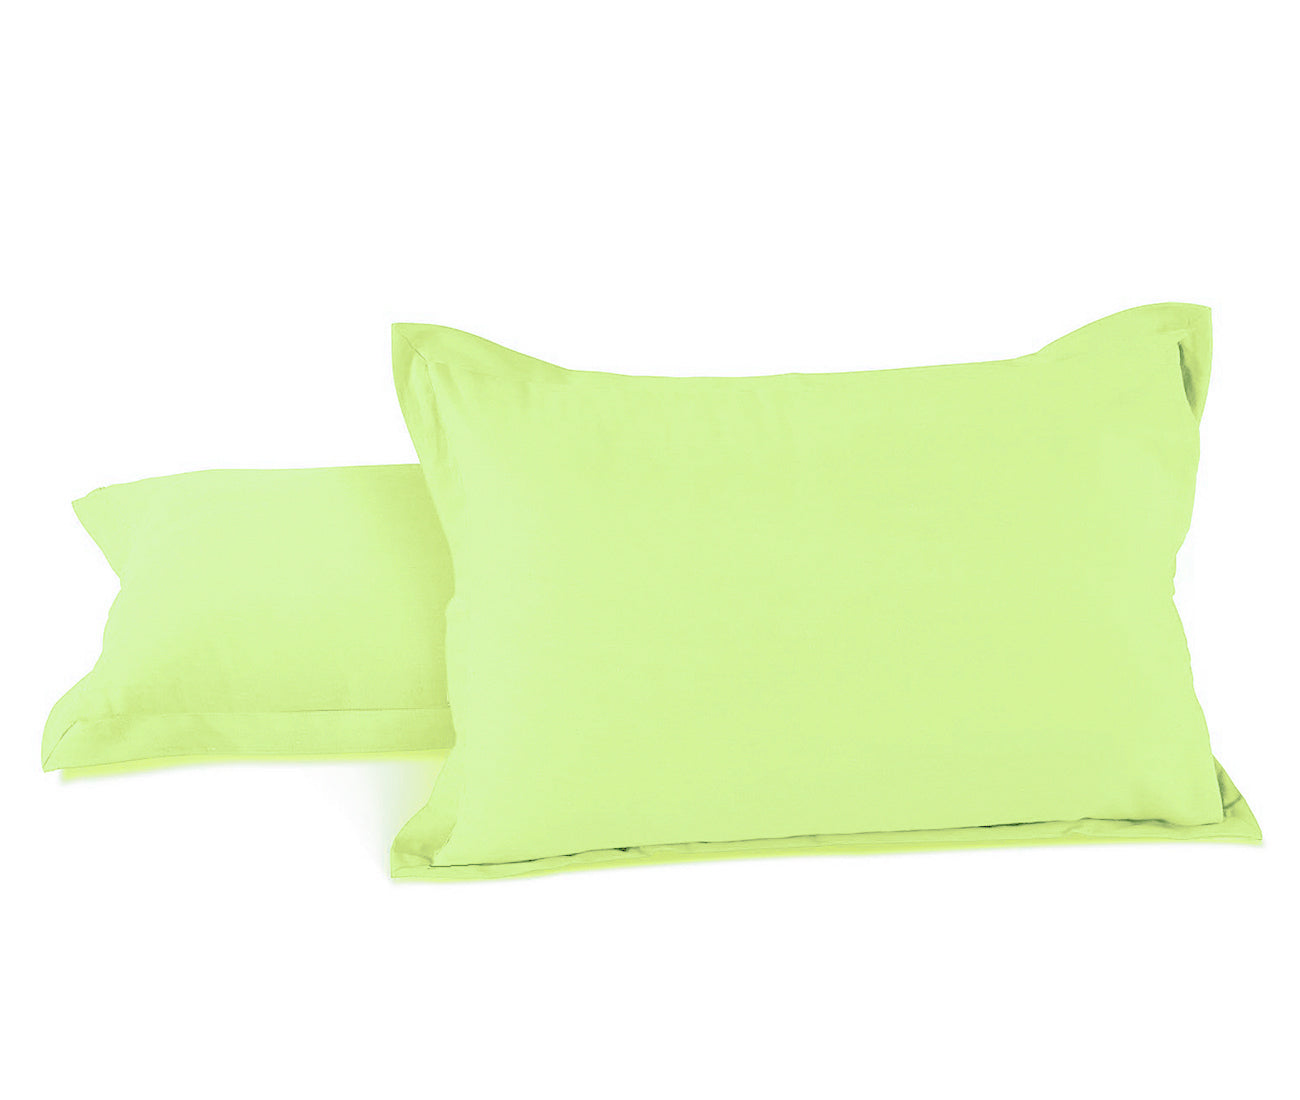 "Aurave Cotton Satin 400 TC Pillow Cover (18""x27""_Lime Green)"